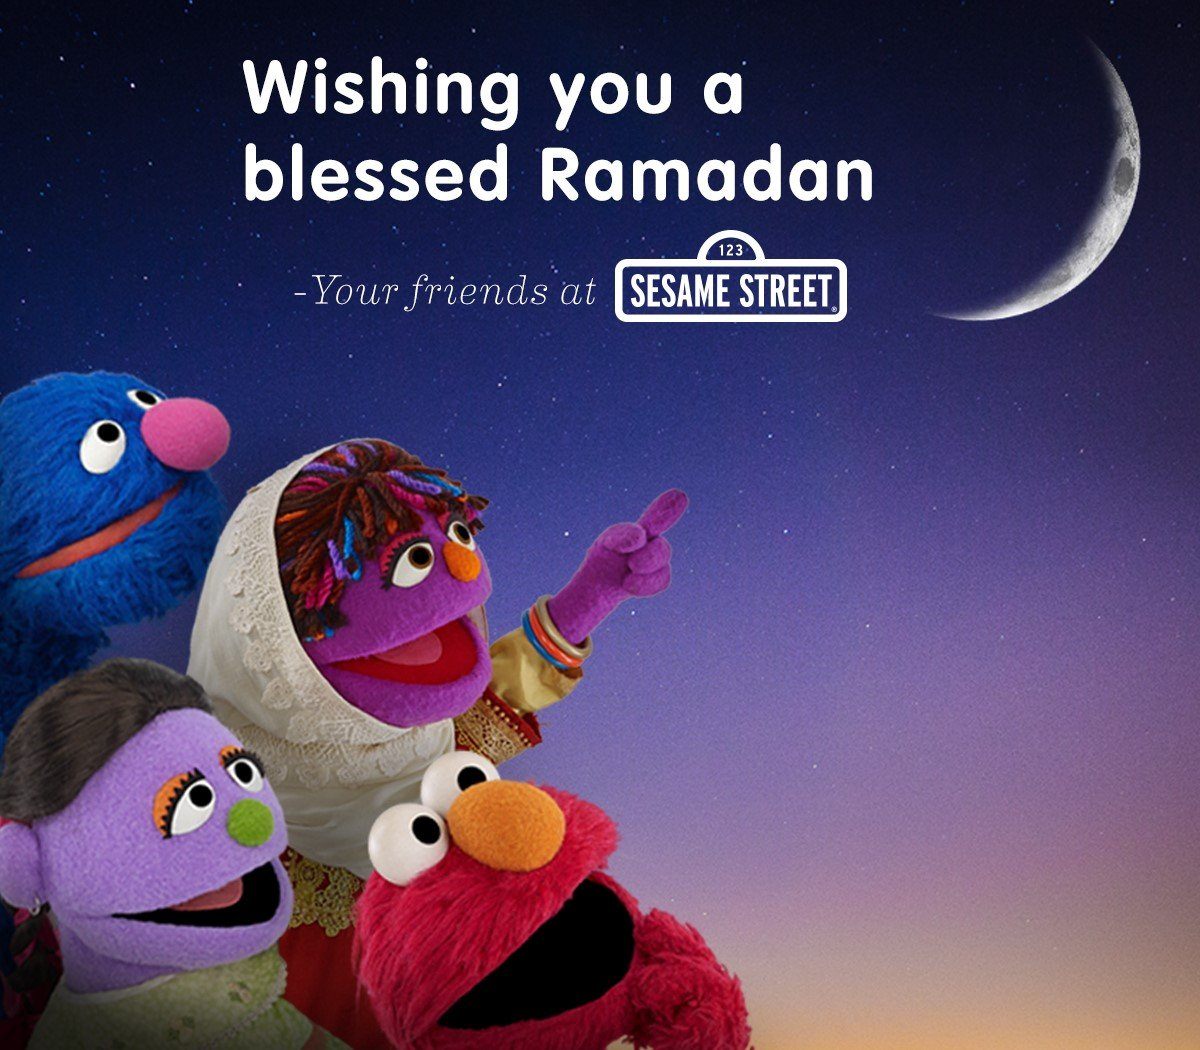 Wishing all our friends a blessed and healthy Ramadan! https://t.co/S9zHKo5RHE